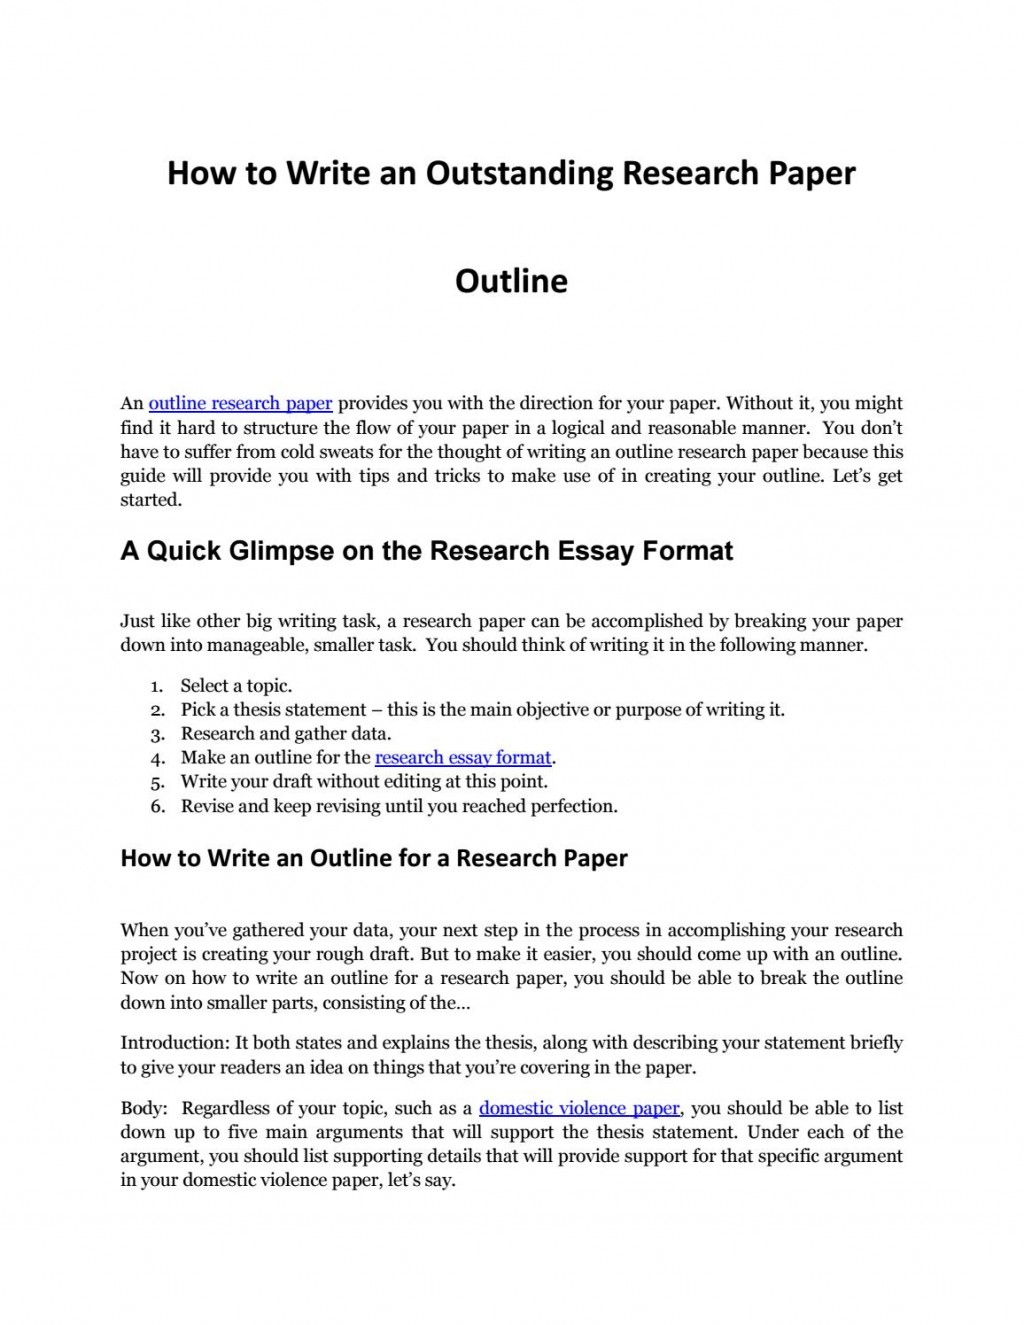 019 Outlines For Research Paper Page 1 Top A Sample Outline Apa Style On Bullying In Schools Writing An Large